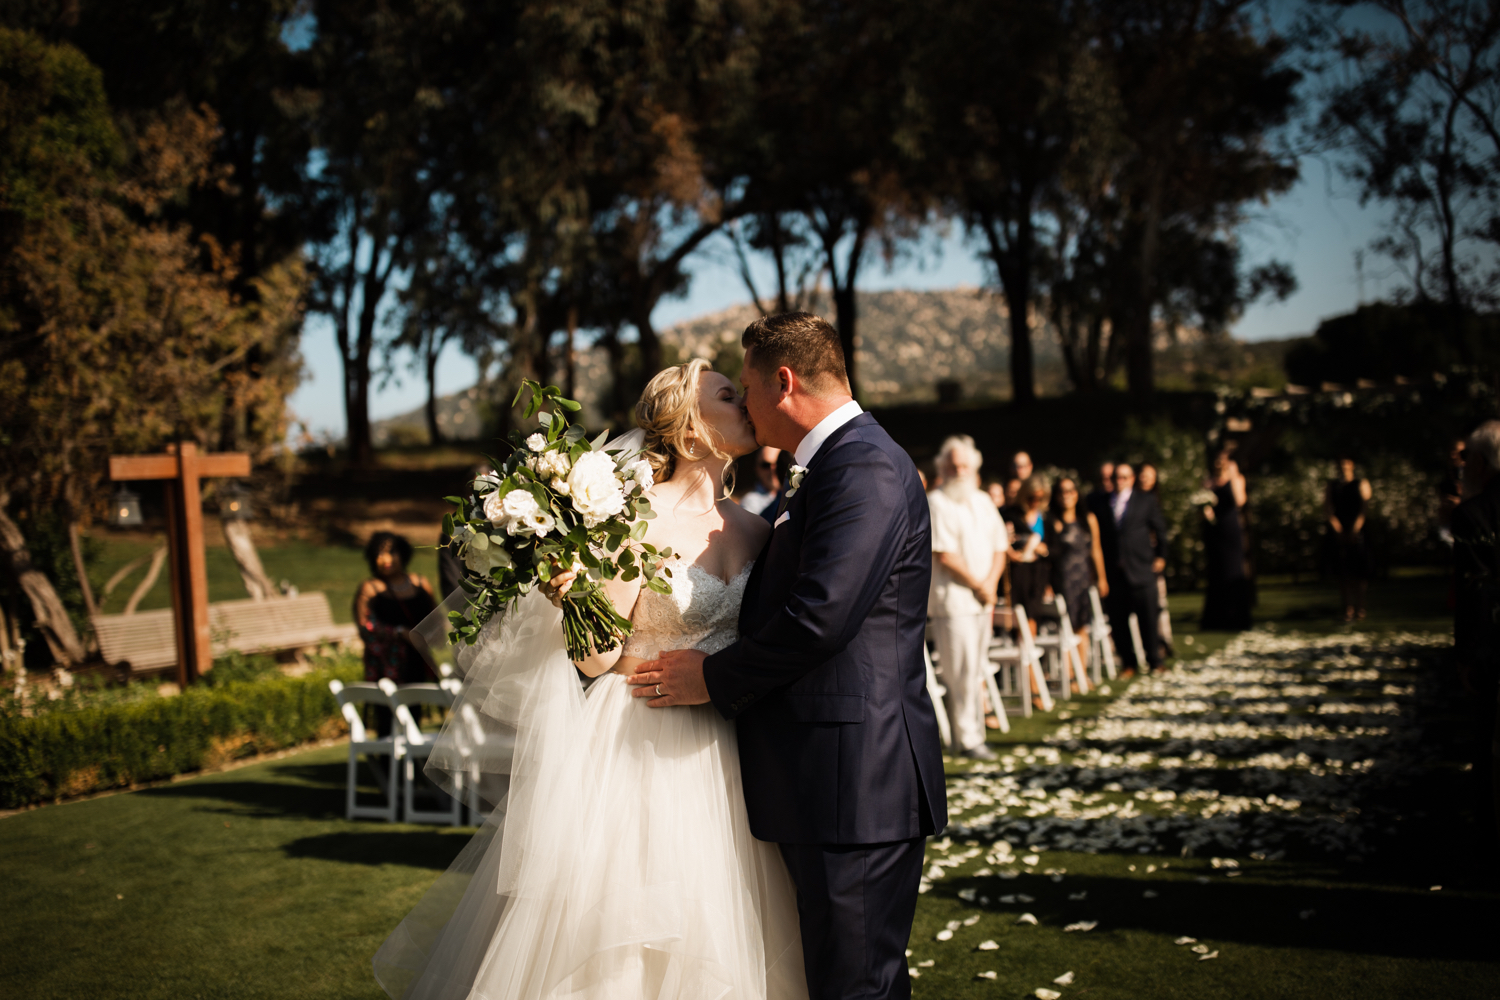 Wedding Temecula Creek Inn Orange County San Diego Los Angeles Photographer Elopement Marriage Photography Engagement Destination  - 61.jpg